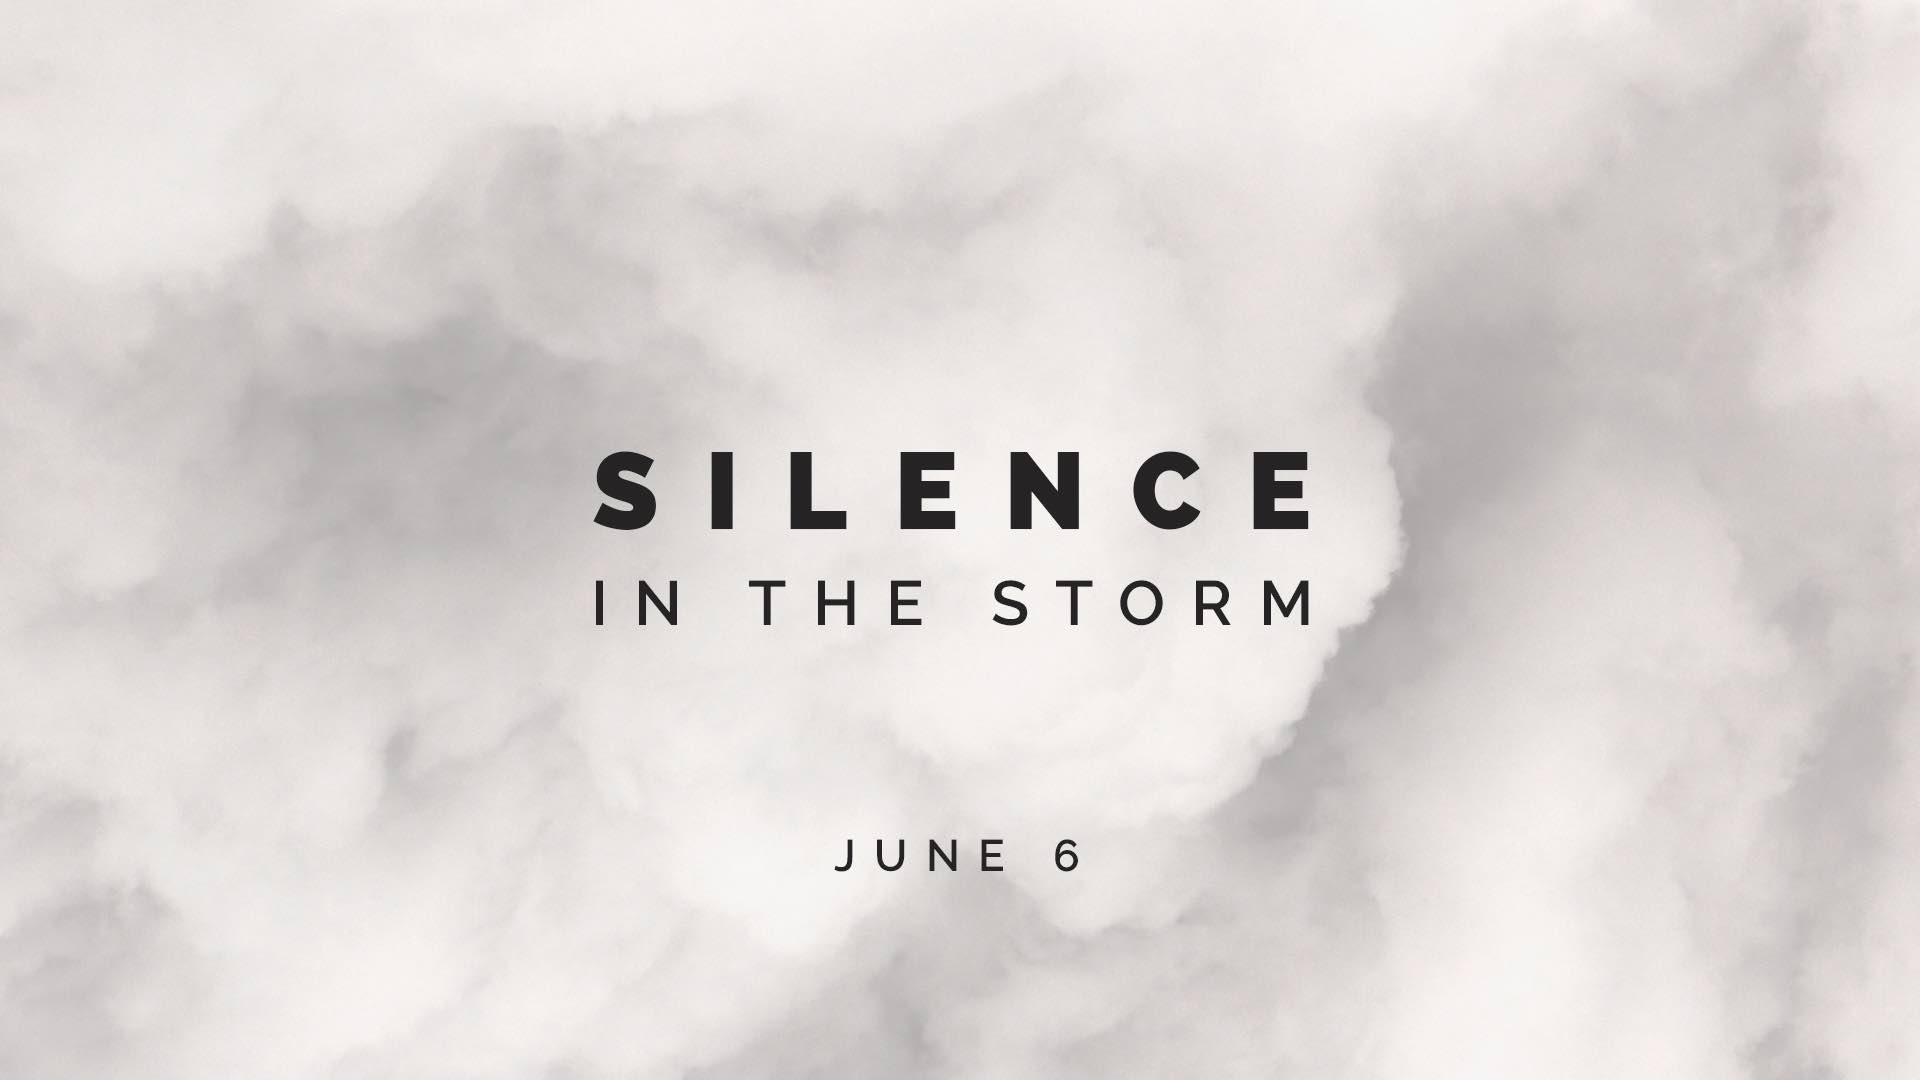 Silence in the Storm